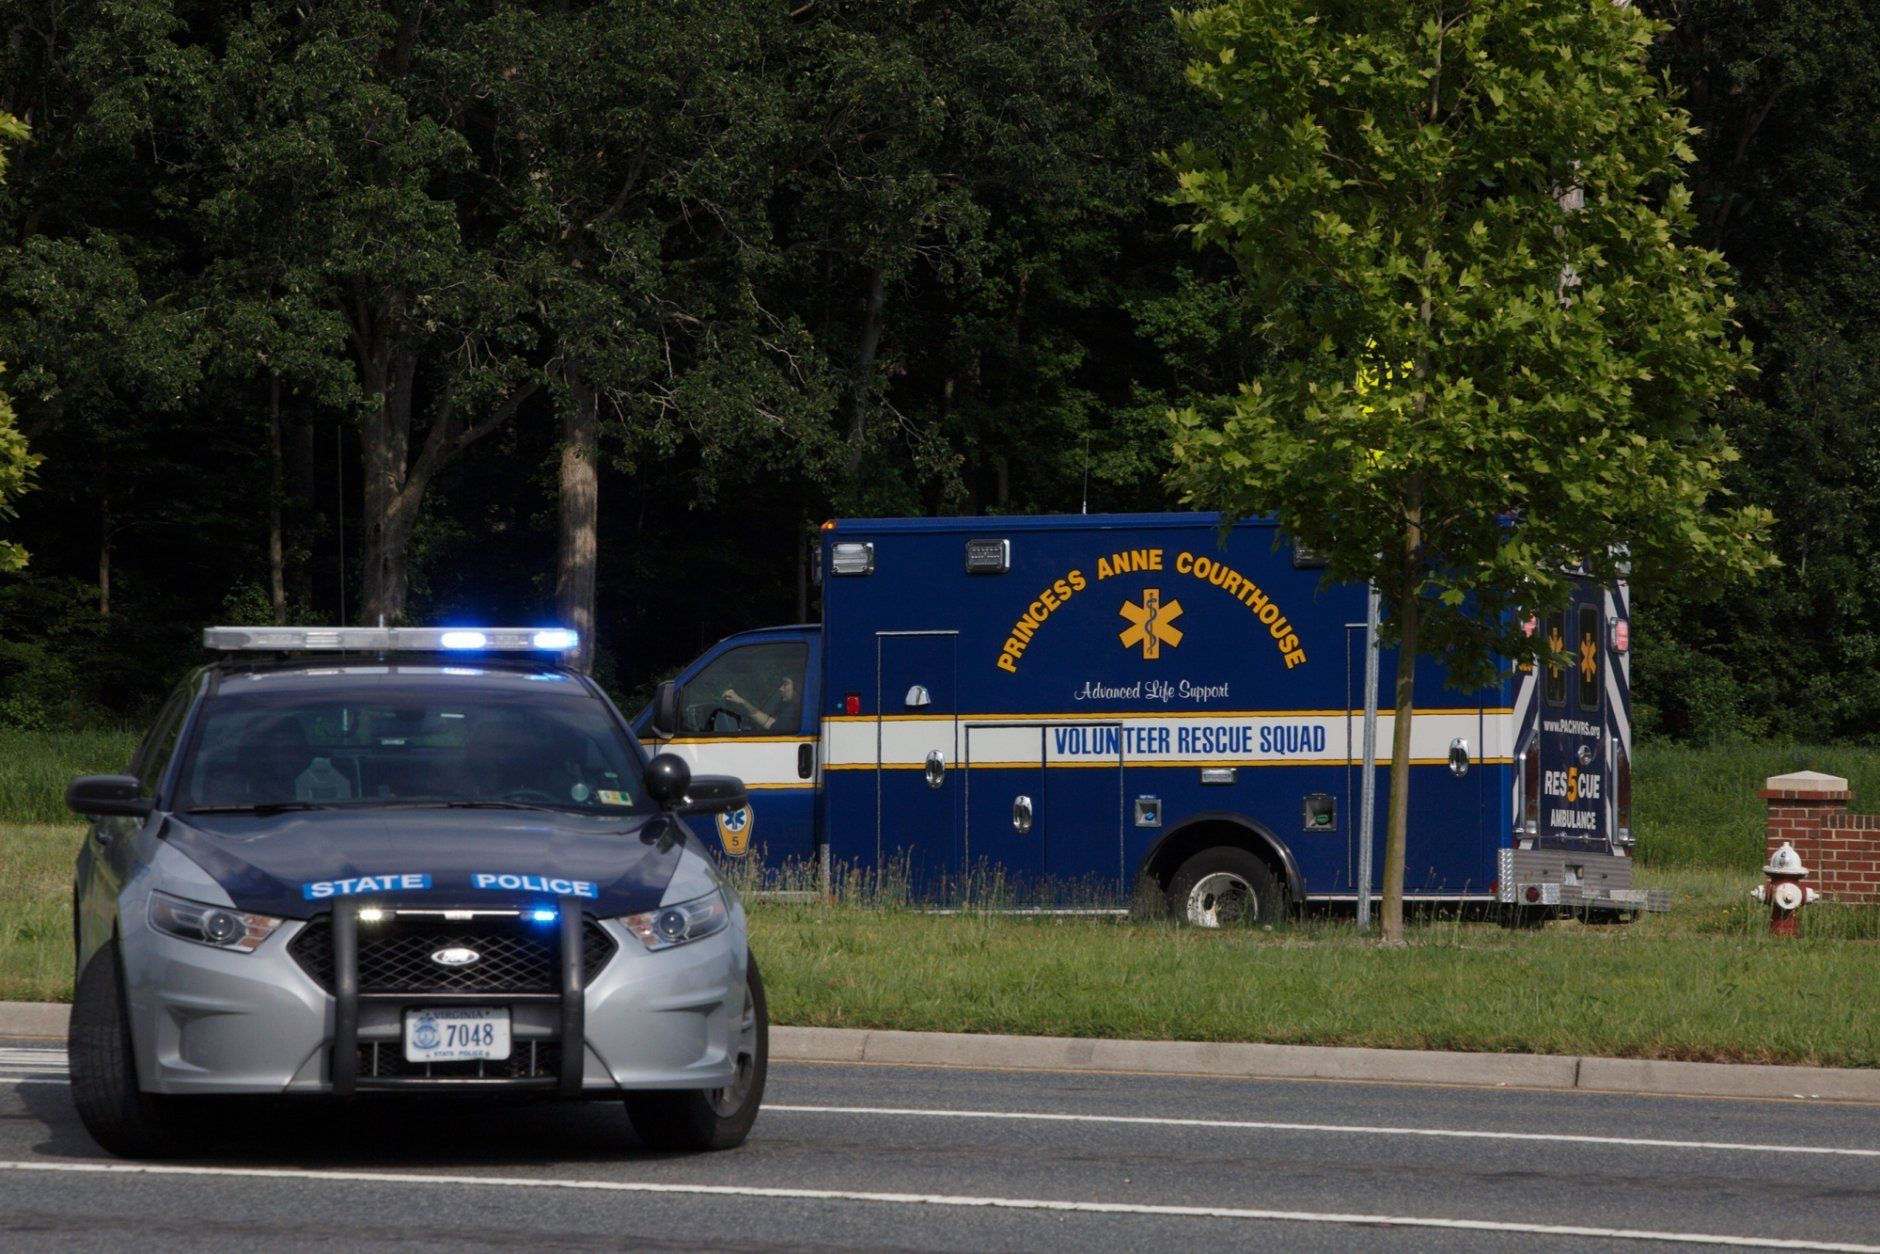 An ambulance turns on Nimmo Parkway following a shooting at the Virginia Beach Municipal Center on Friday, May 31, 2019, in Virginia Beach, Va. At least one shooter wounded multiple people at a municipal center in Virginia Beach on Friday, according to police, who said a suspect has been taken into custody. (Kaitlin McKeown/The Virginian-Pilot via AP)